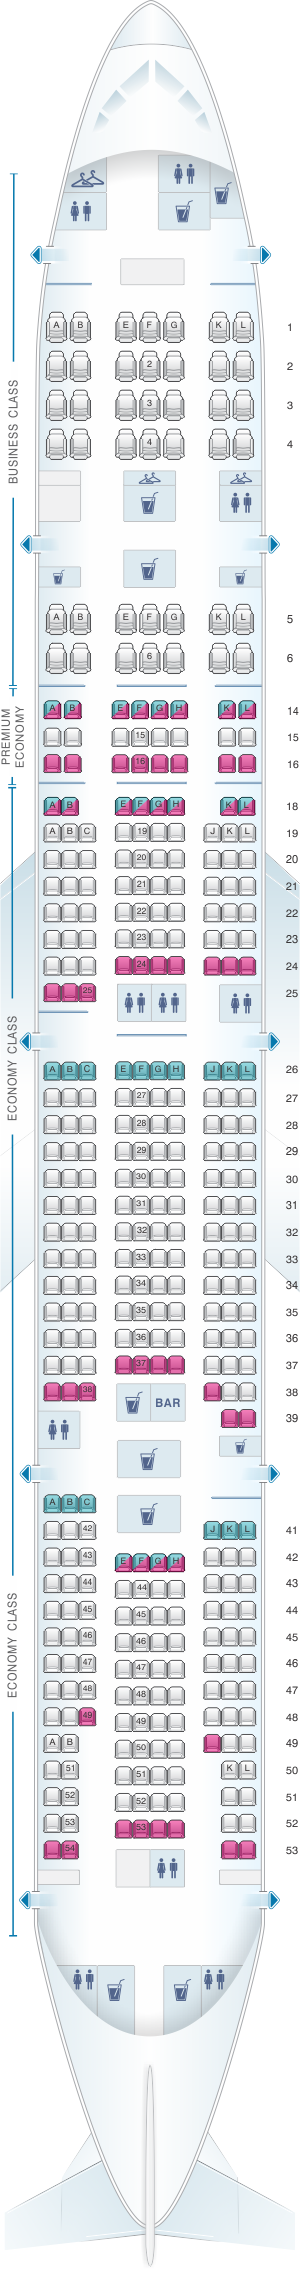 Seat map air france boeing b777 300 long haul for Plan de cabine boeing 777 200 air france